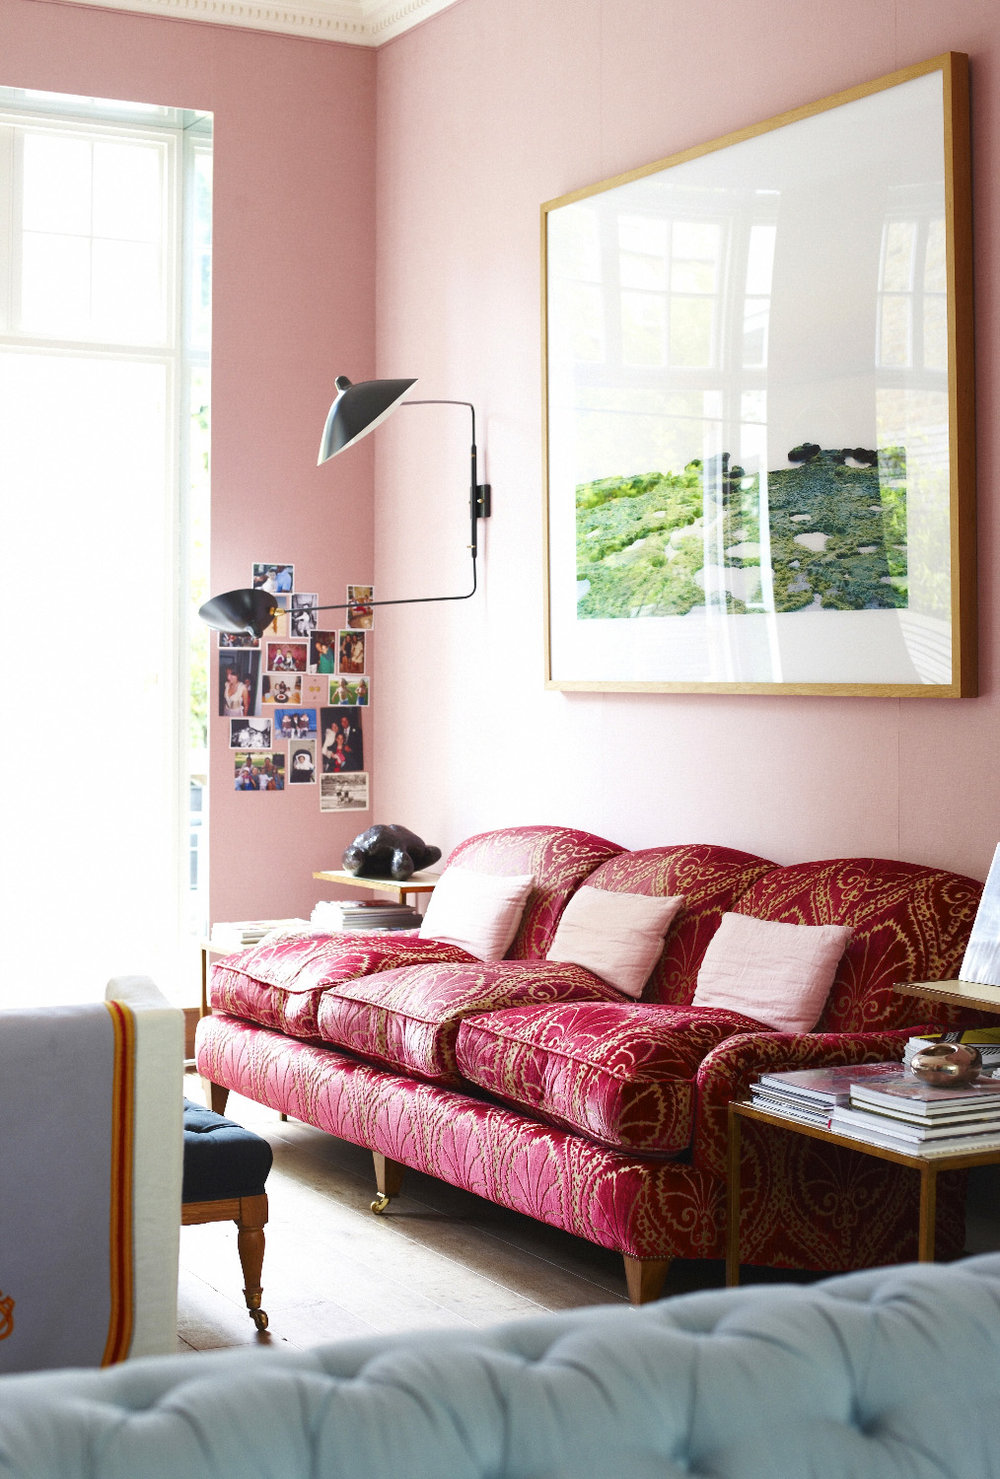 Found in Ahalogy Muse: 12 Pink Rooms to Crush On, Thou Swell